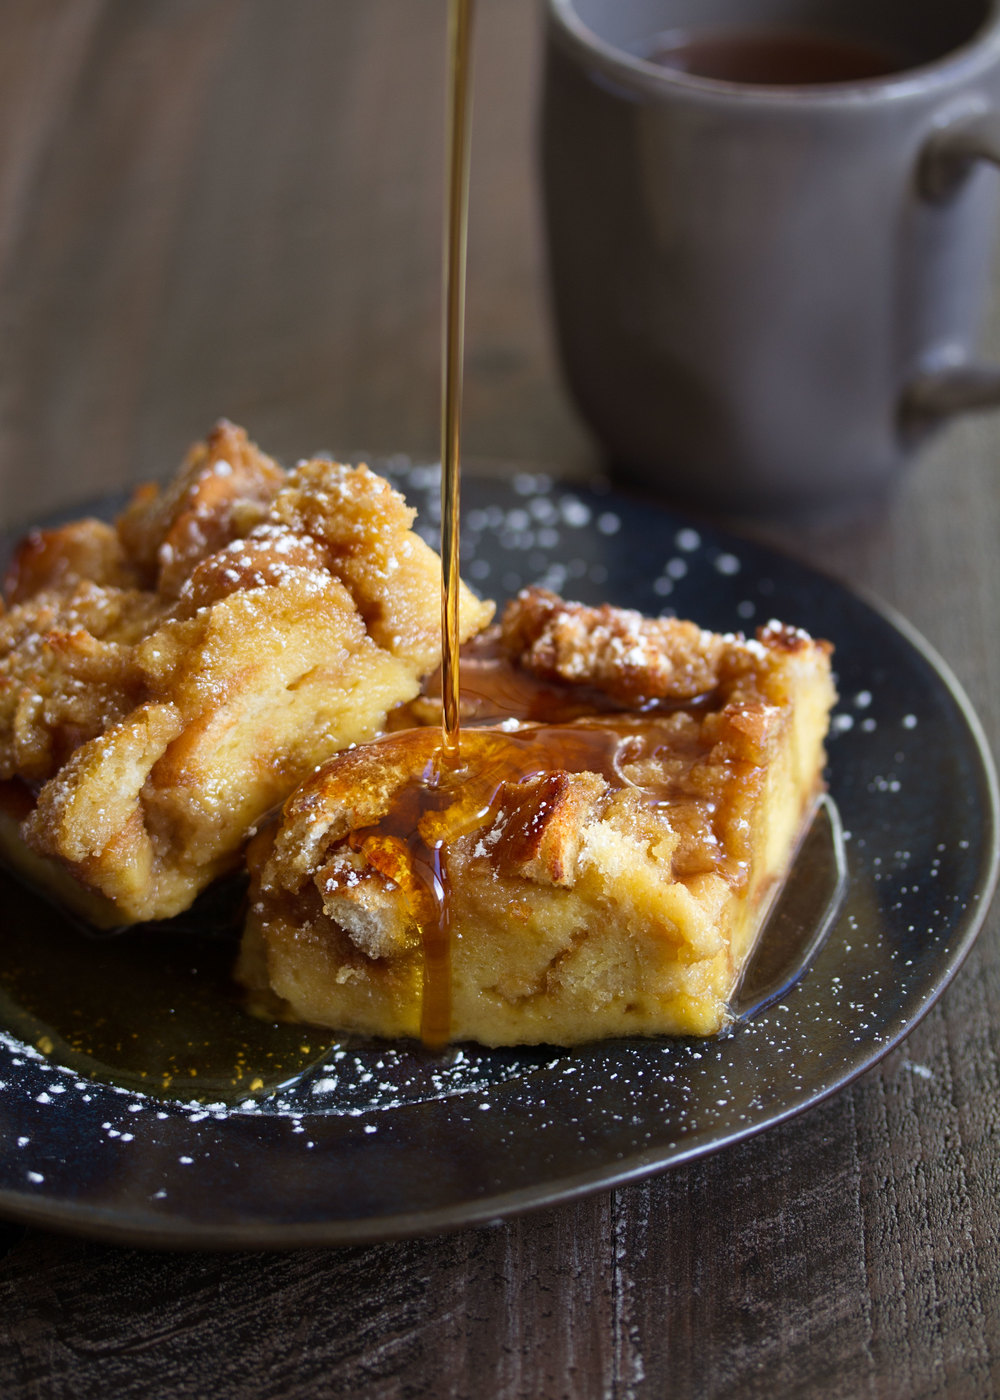 baked french toast closeup